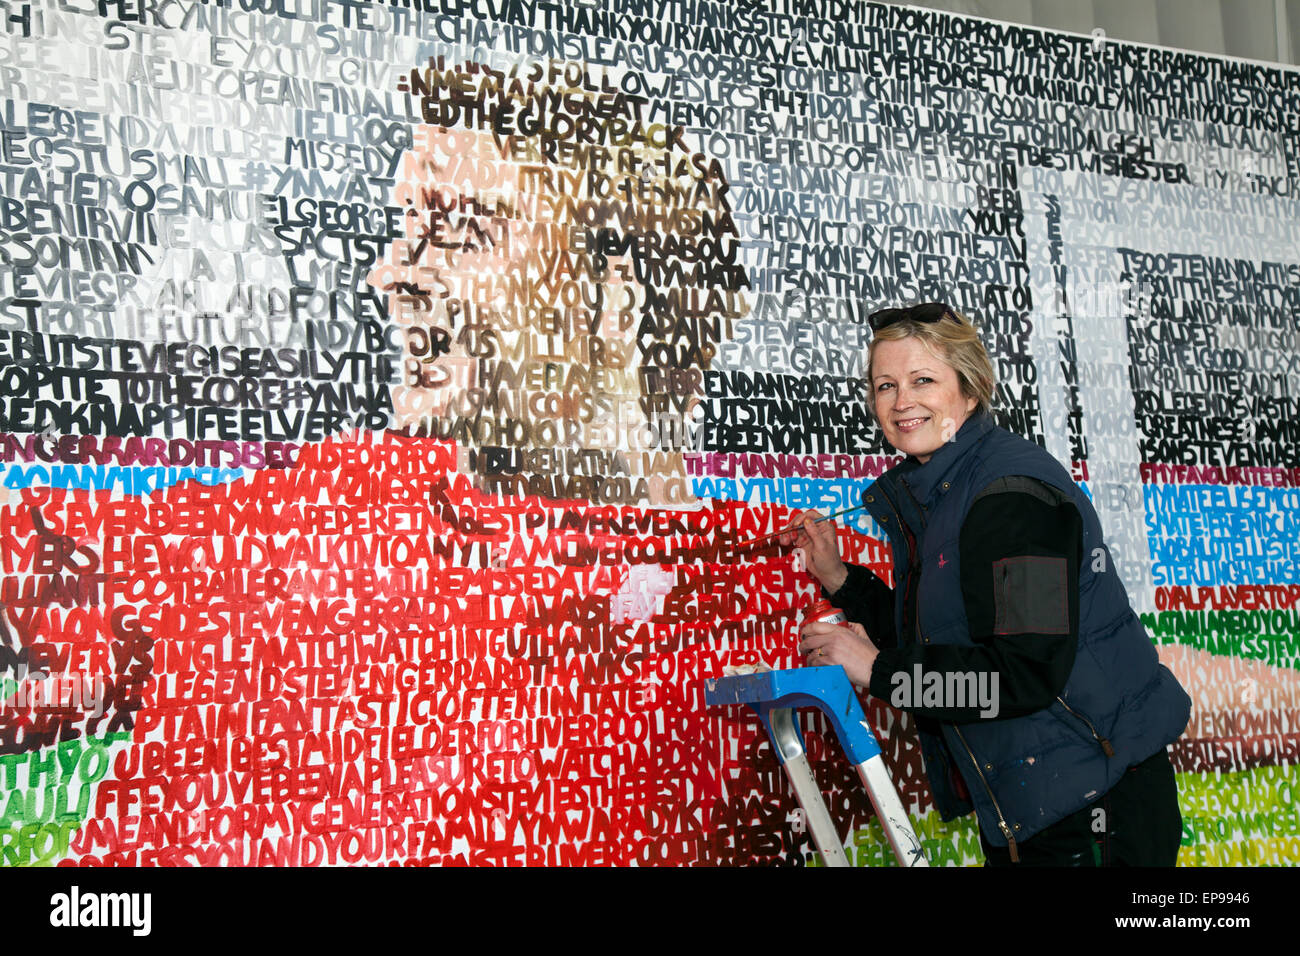 A mural of departing Liverpool FC captain Steven Gerrard, Liverpool, Merseyside, UK 15th May, 2015 The Stevie Gerrard - Stock Image